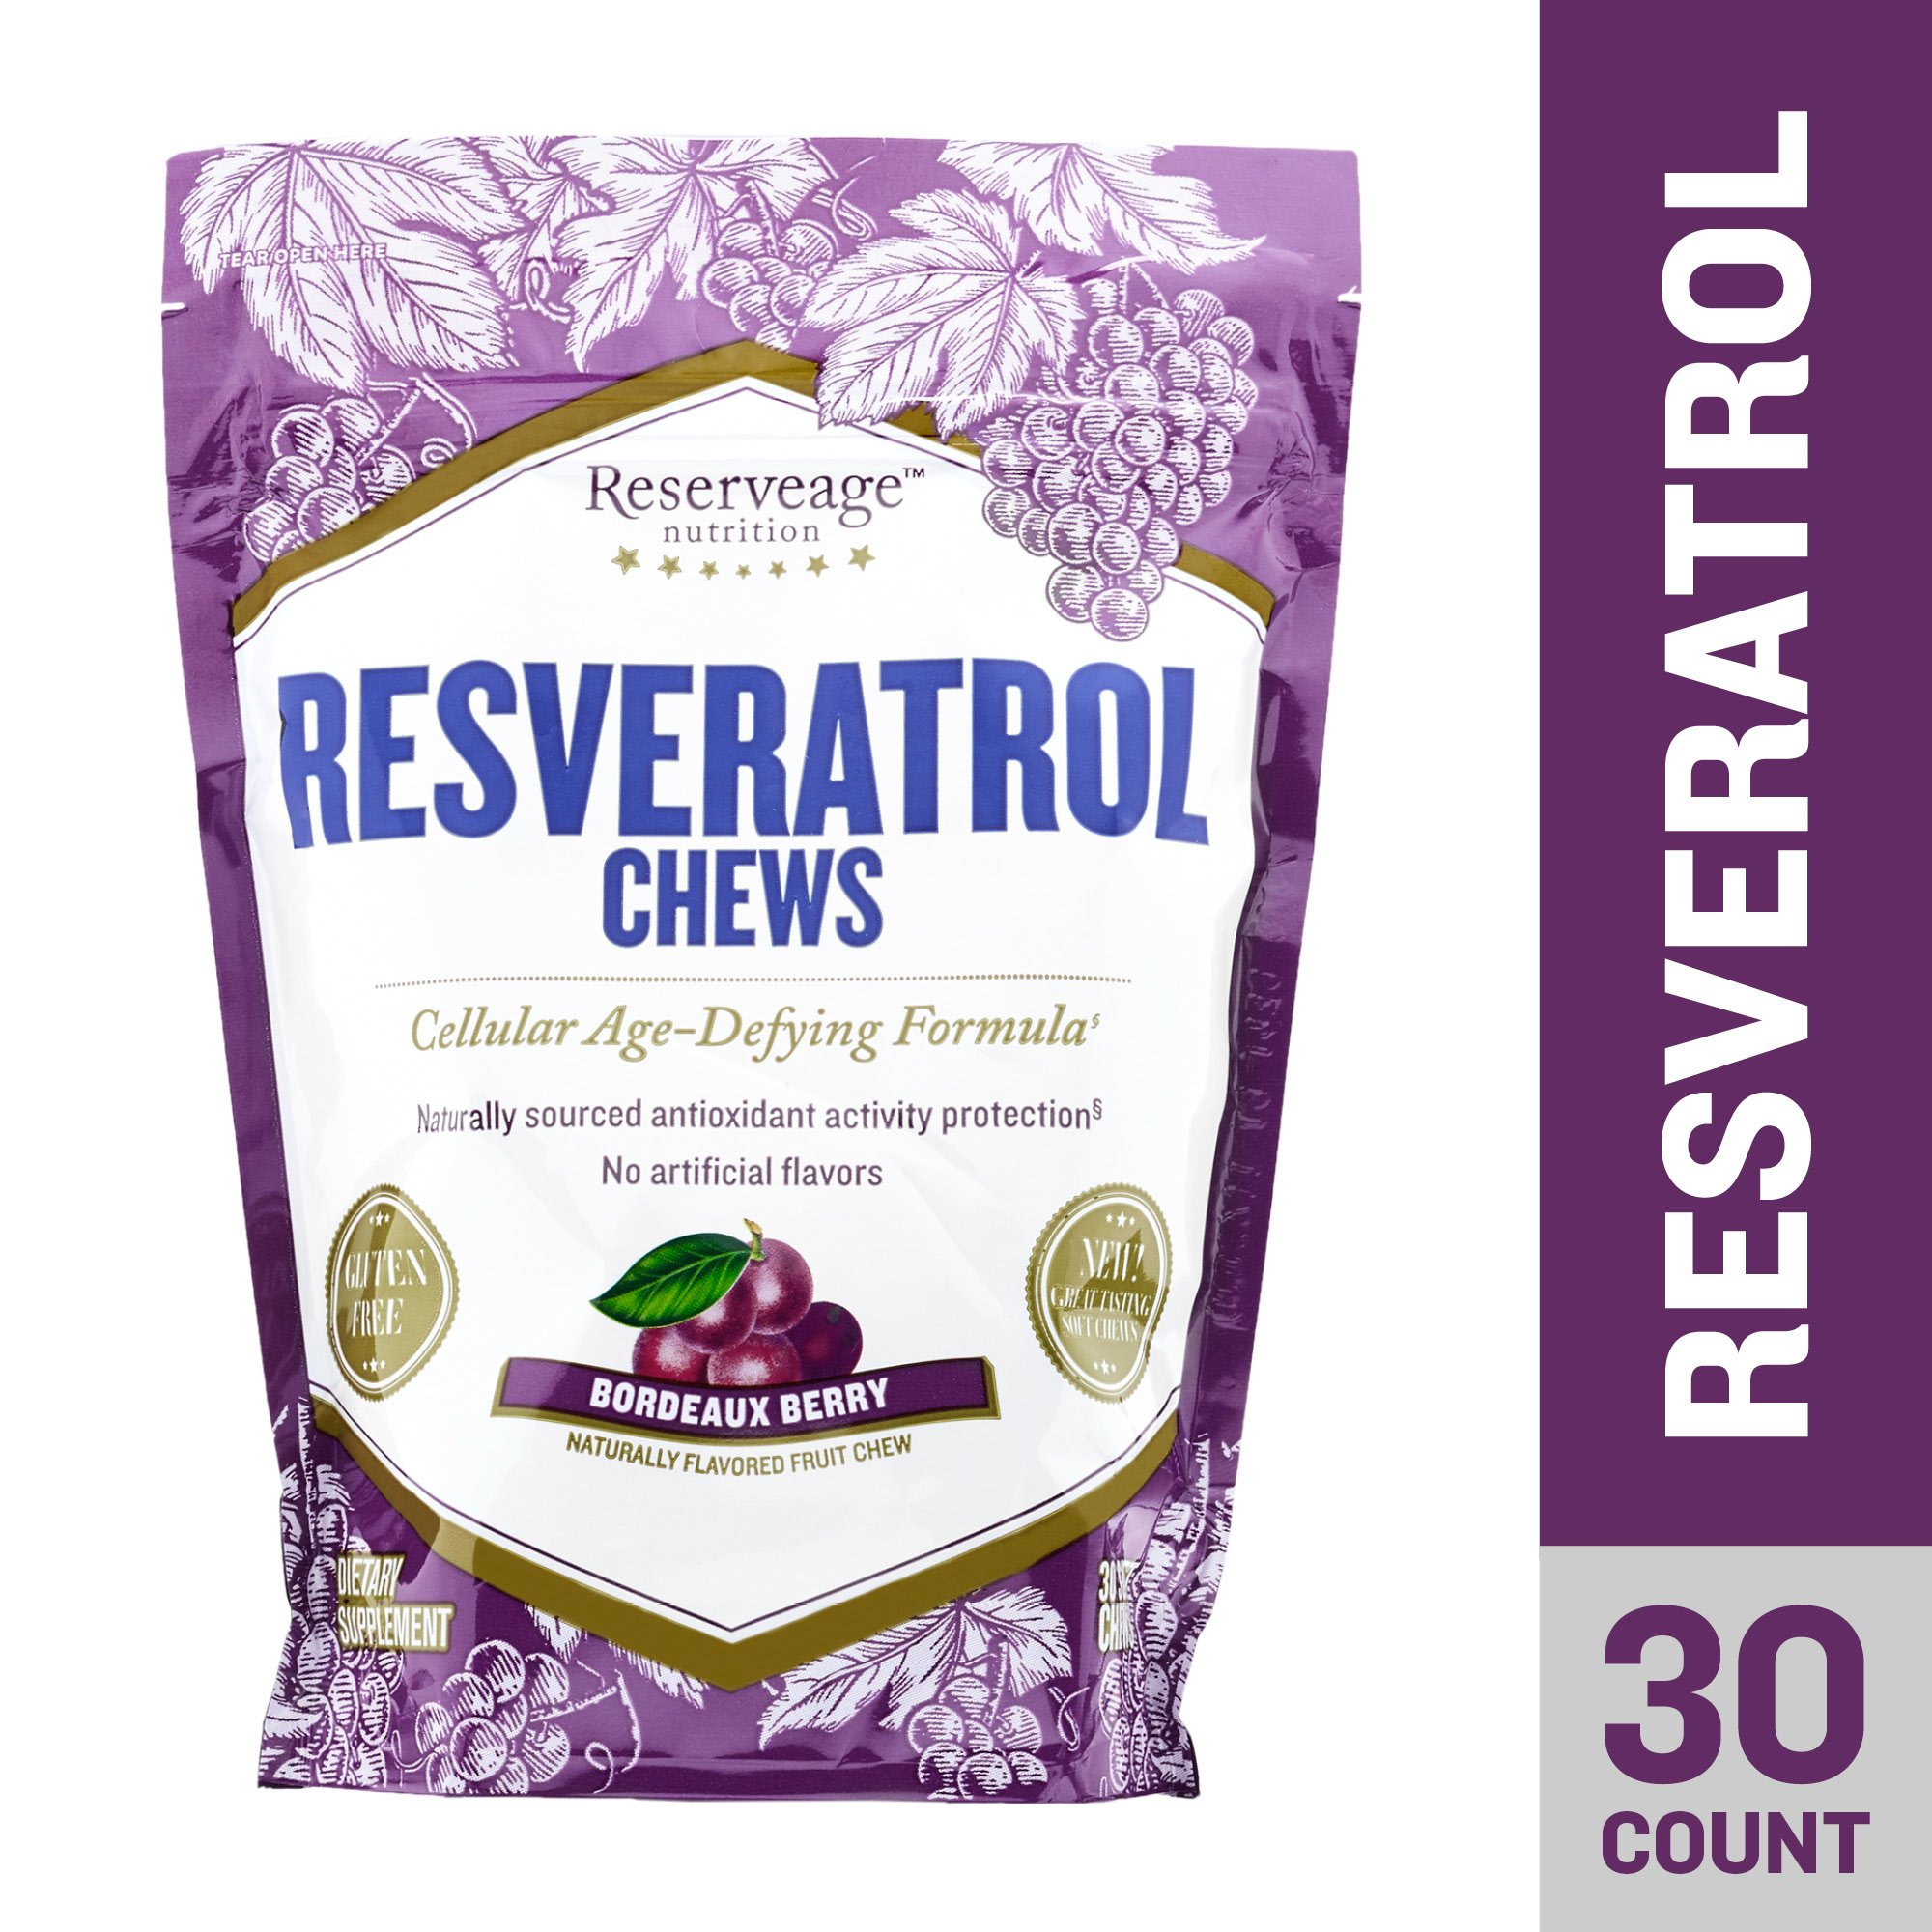 Reserveage, Resveratrol Chews, Anti Wrinkle Support to Protect Against the Aging Effects of Free Radicals for Youthful, Smooth Skin with Organic Red Grape and Acai, Bordeaux Berry, 30 Chews by Reserveage Nutrition